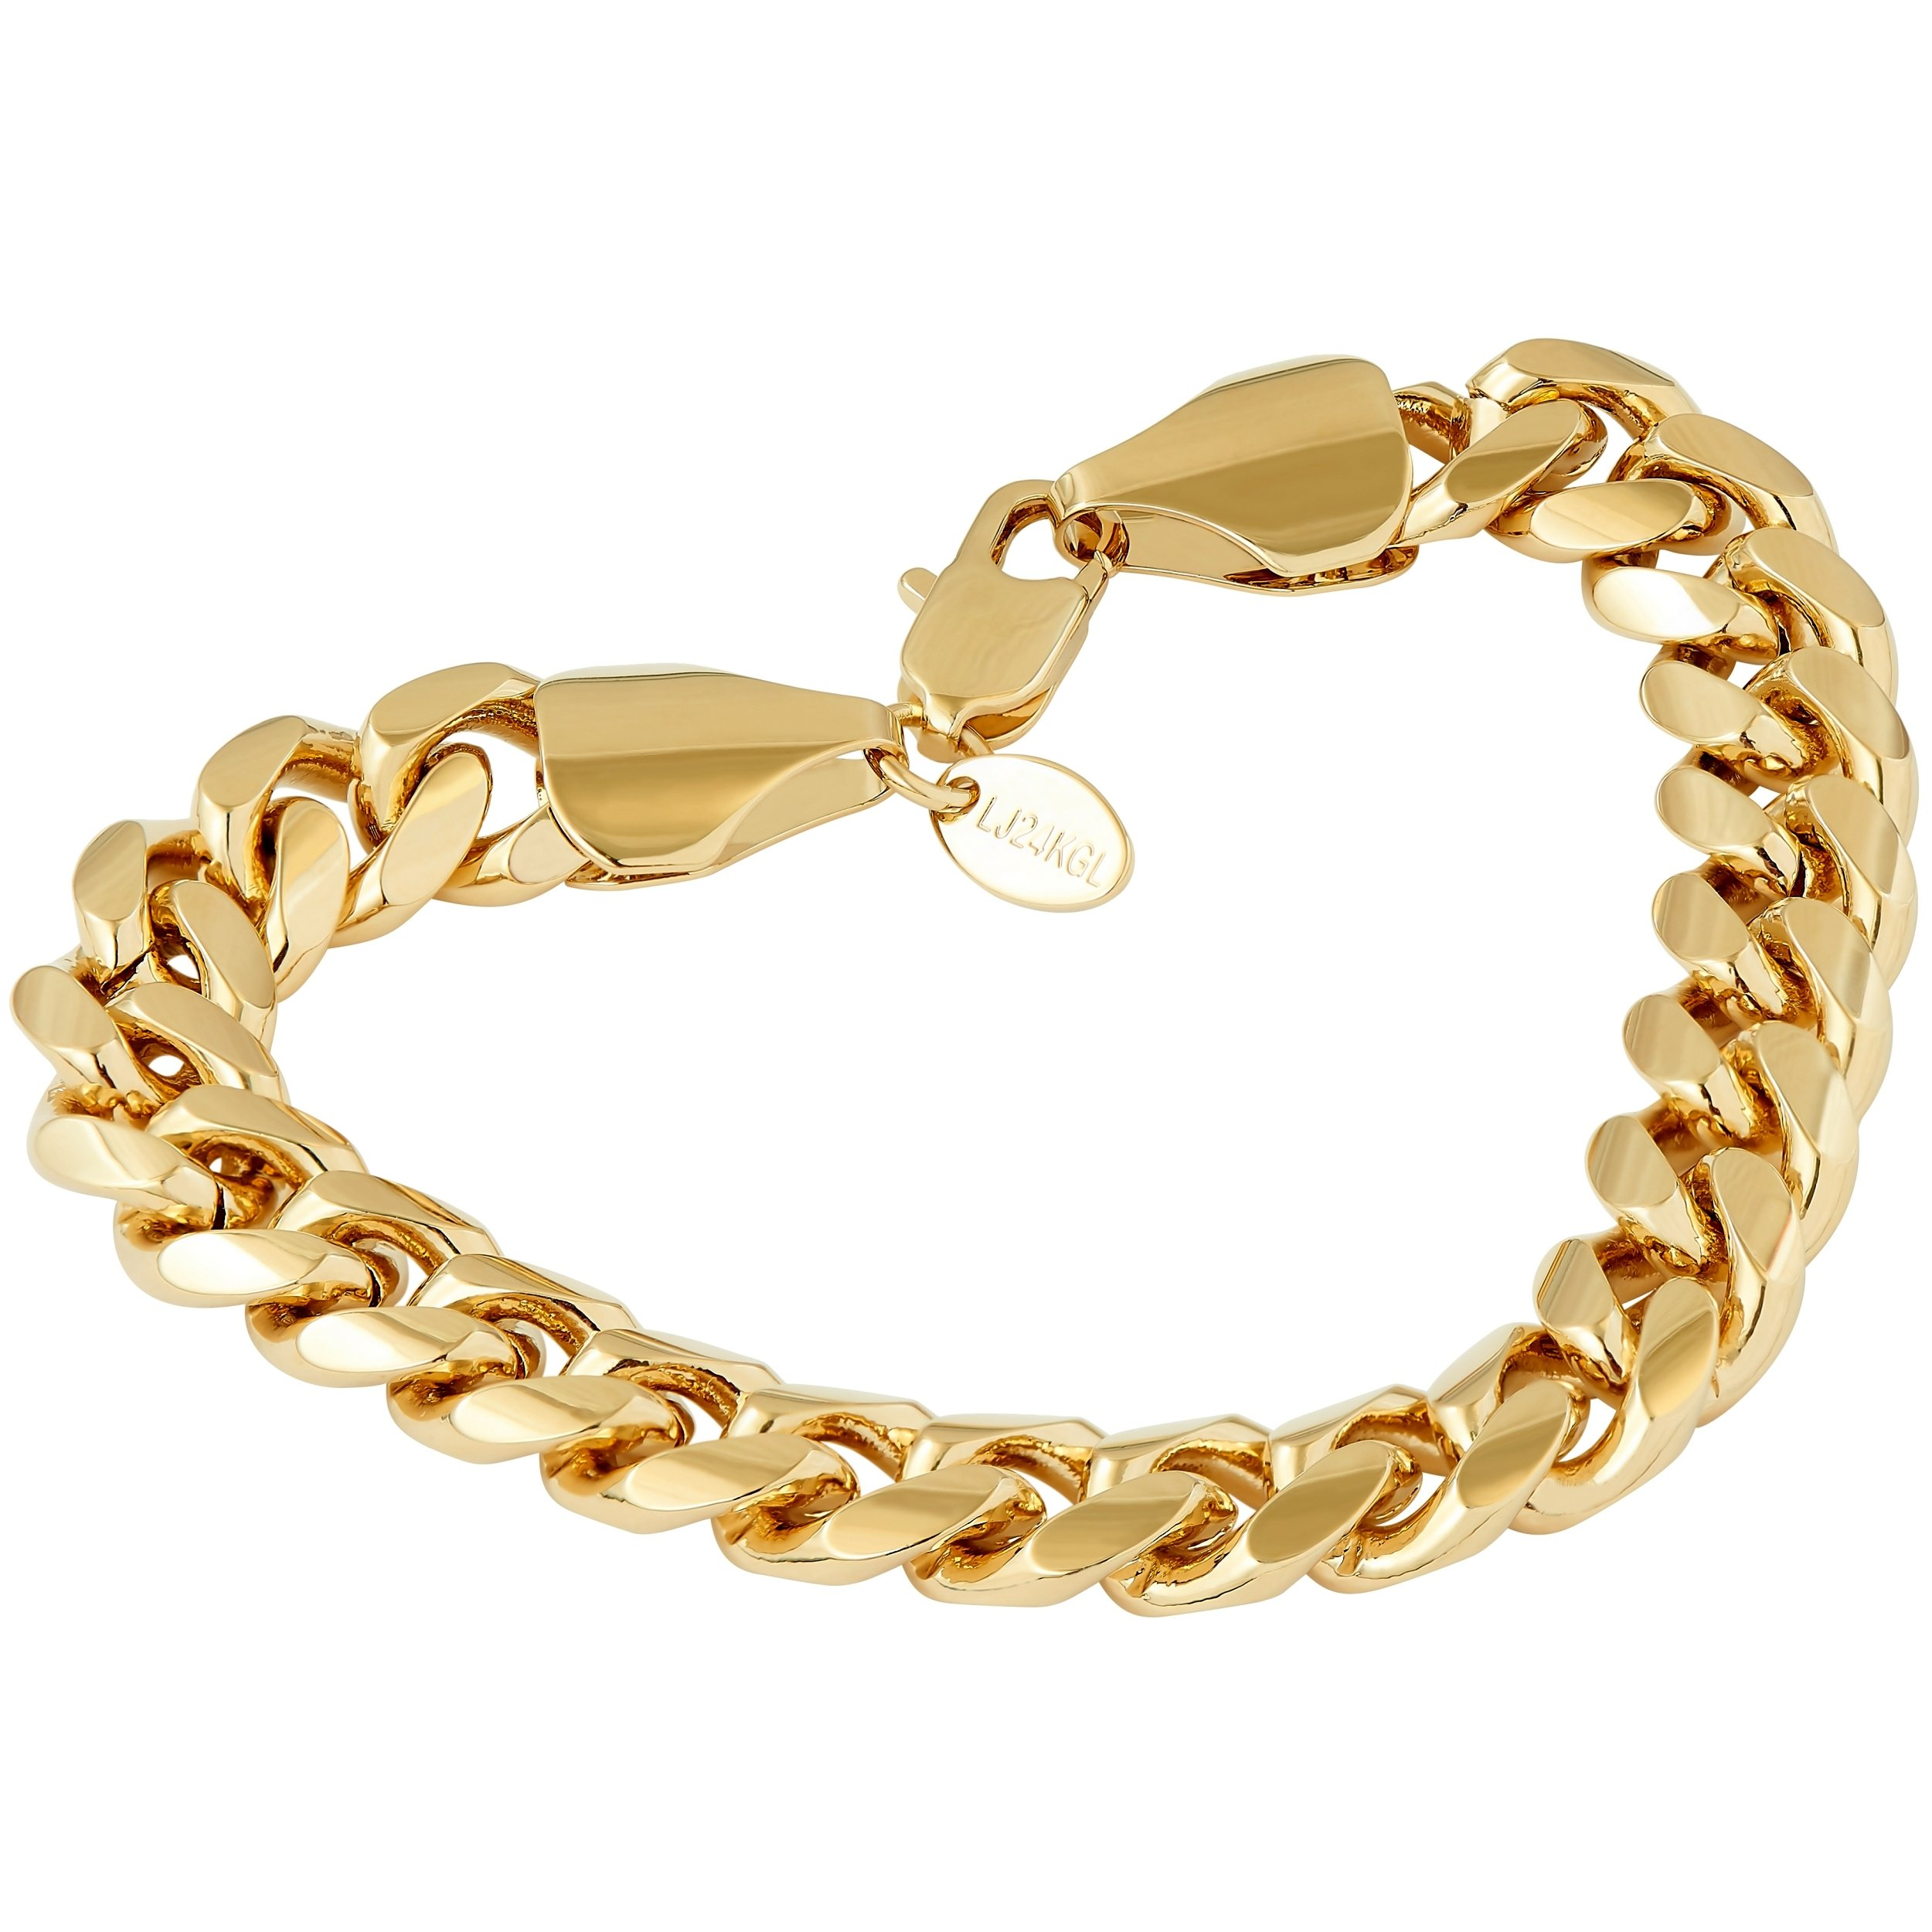 Lifetime Jewelry Cuban Link Bracelet 11MM, Round, 24K Gold Overlay Premium Fashion Jewelry, Guaranteed Life, 8 inches by Lifetime Jewelry (Image #8)